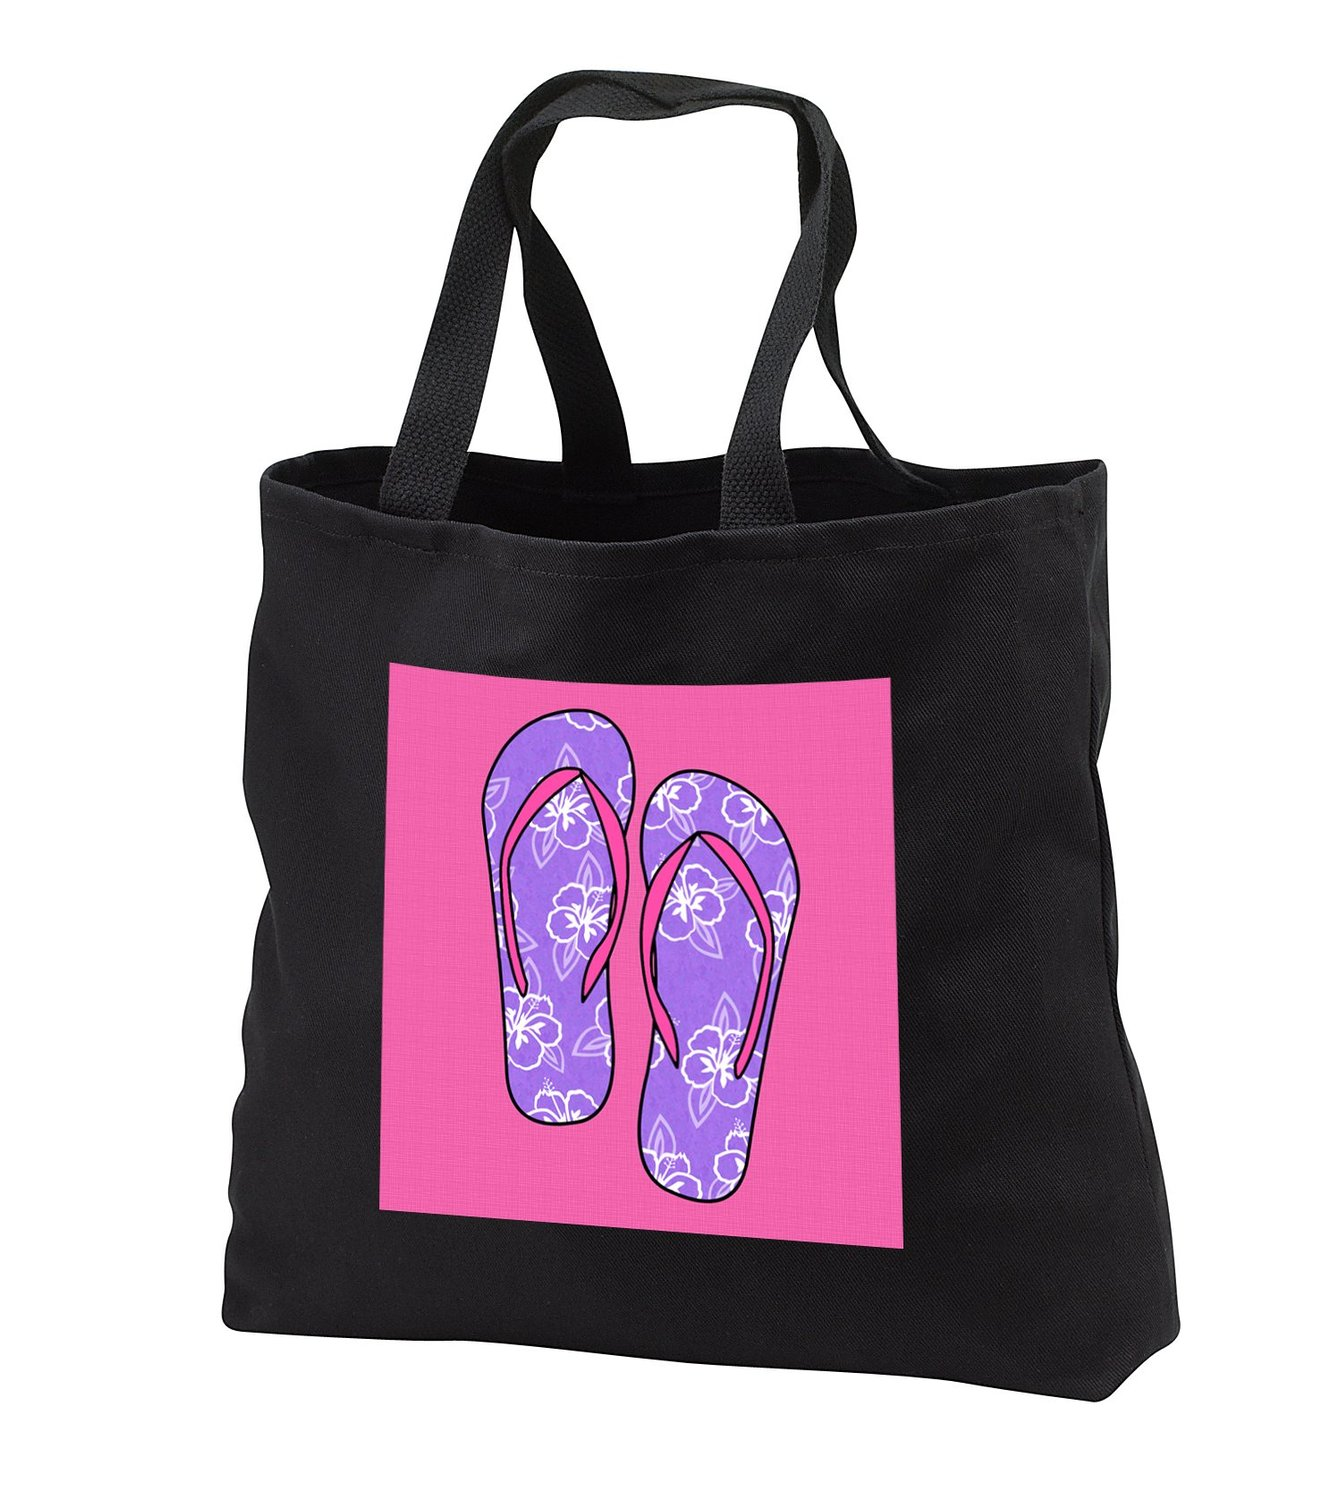 Janna Salak Designs At the Beach - Cute Flip Flops Purple and Pink - Tote Bags